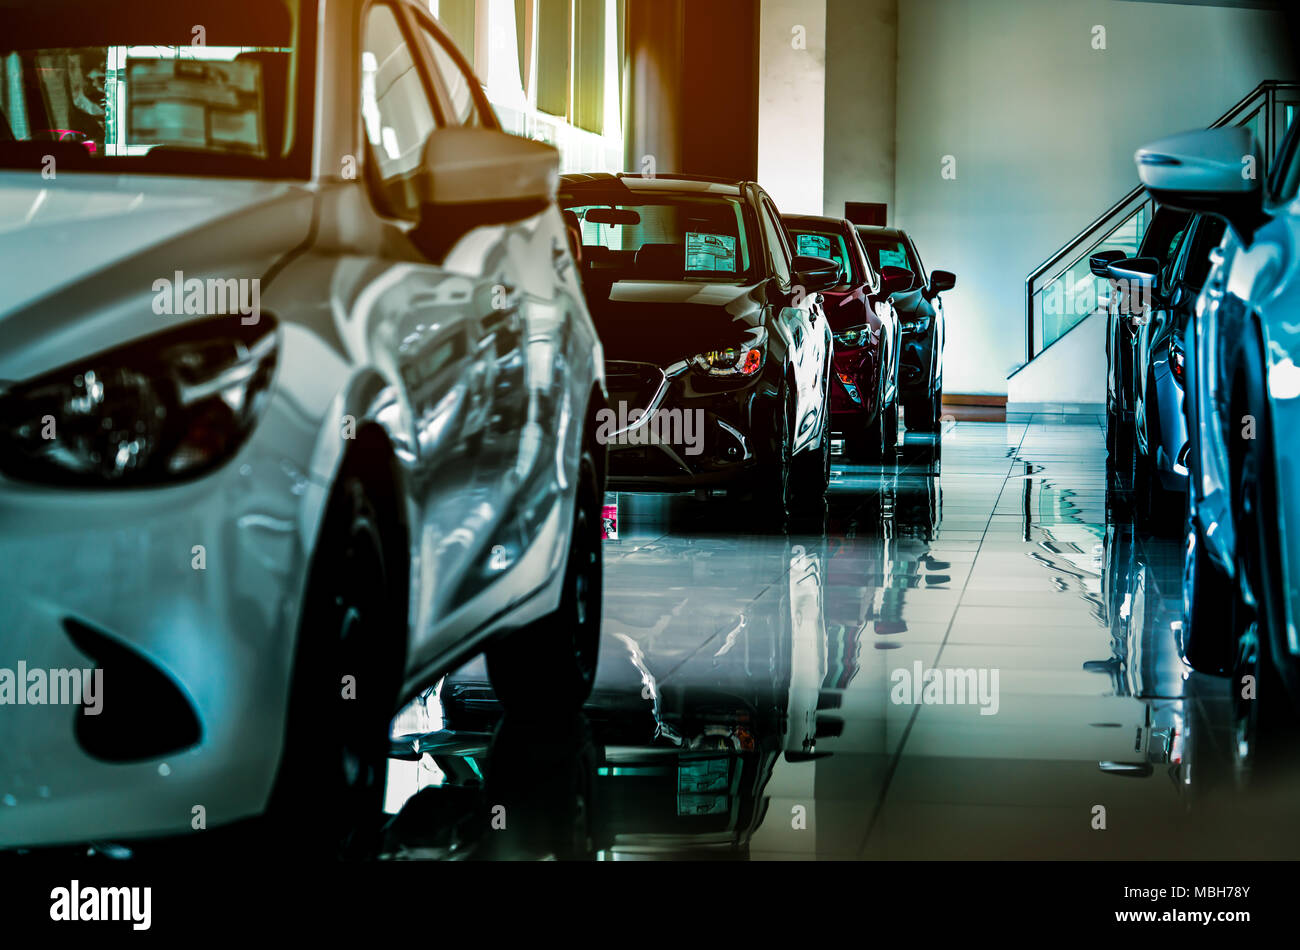 New Luxury Compact Car Parked In Modern Showroom For Sale Car Dealership Office Car Retail Shop Stock Photo Alamy